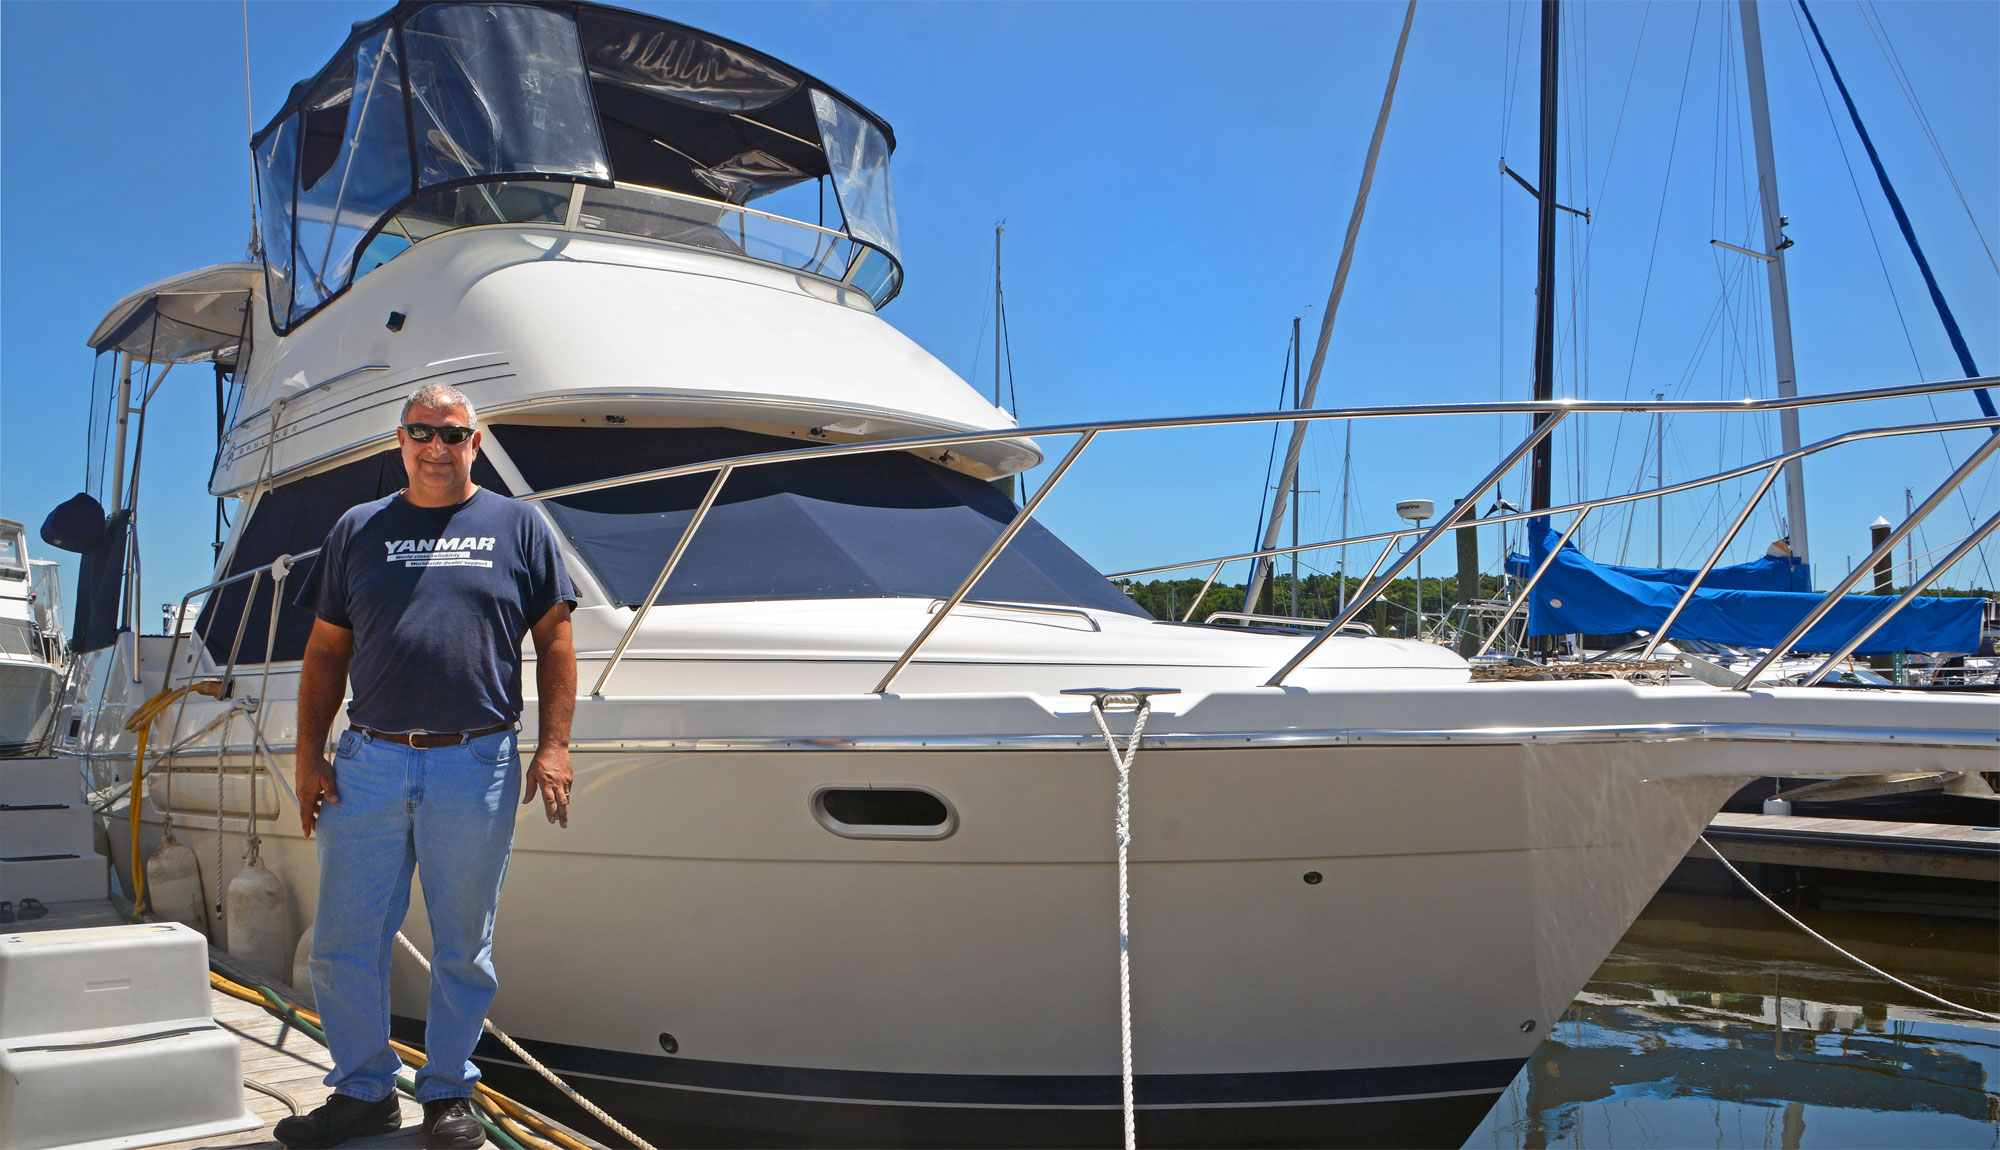 Doh Kohlman, MTTI Marine Service Tech Instructor & Owner/Technician Of Oceanus Marine Group.